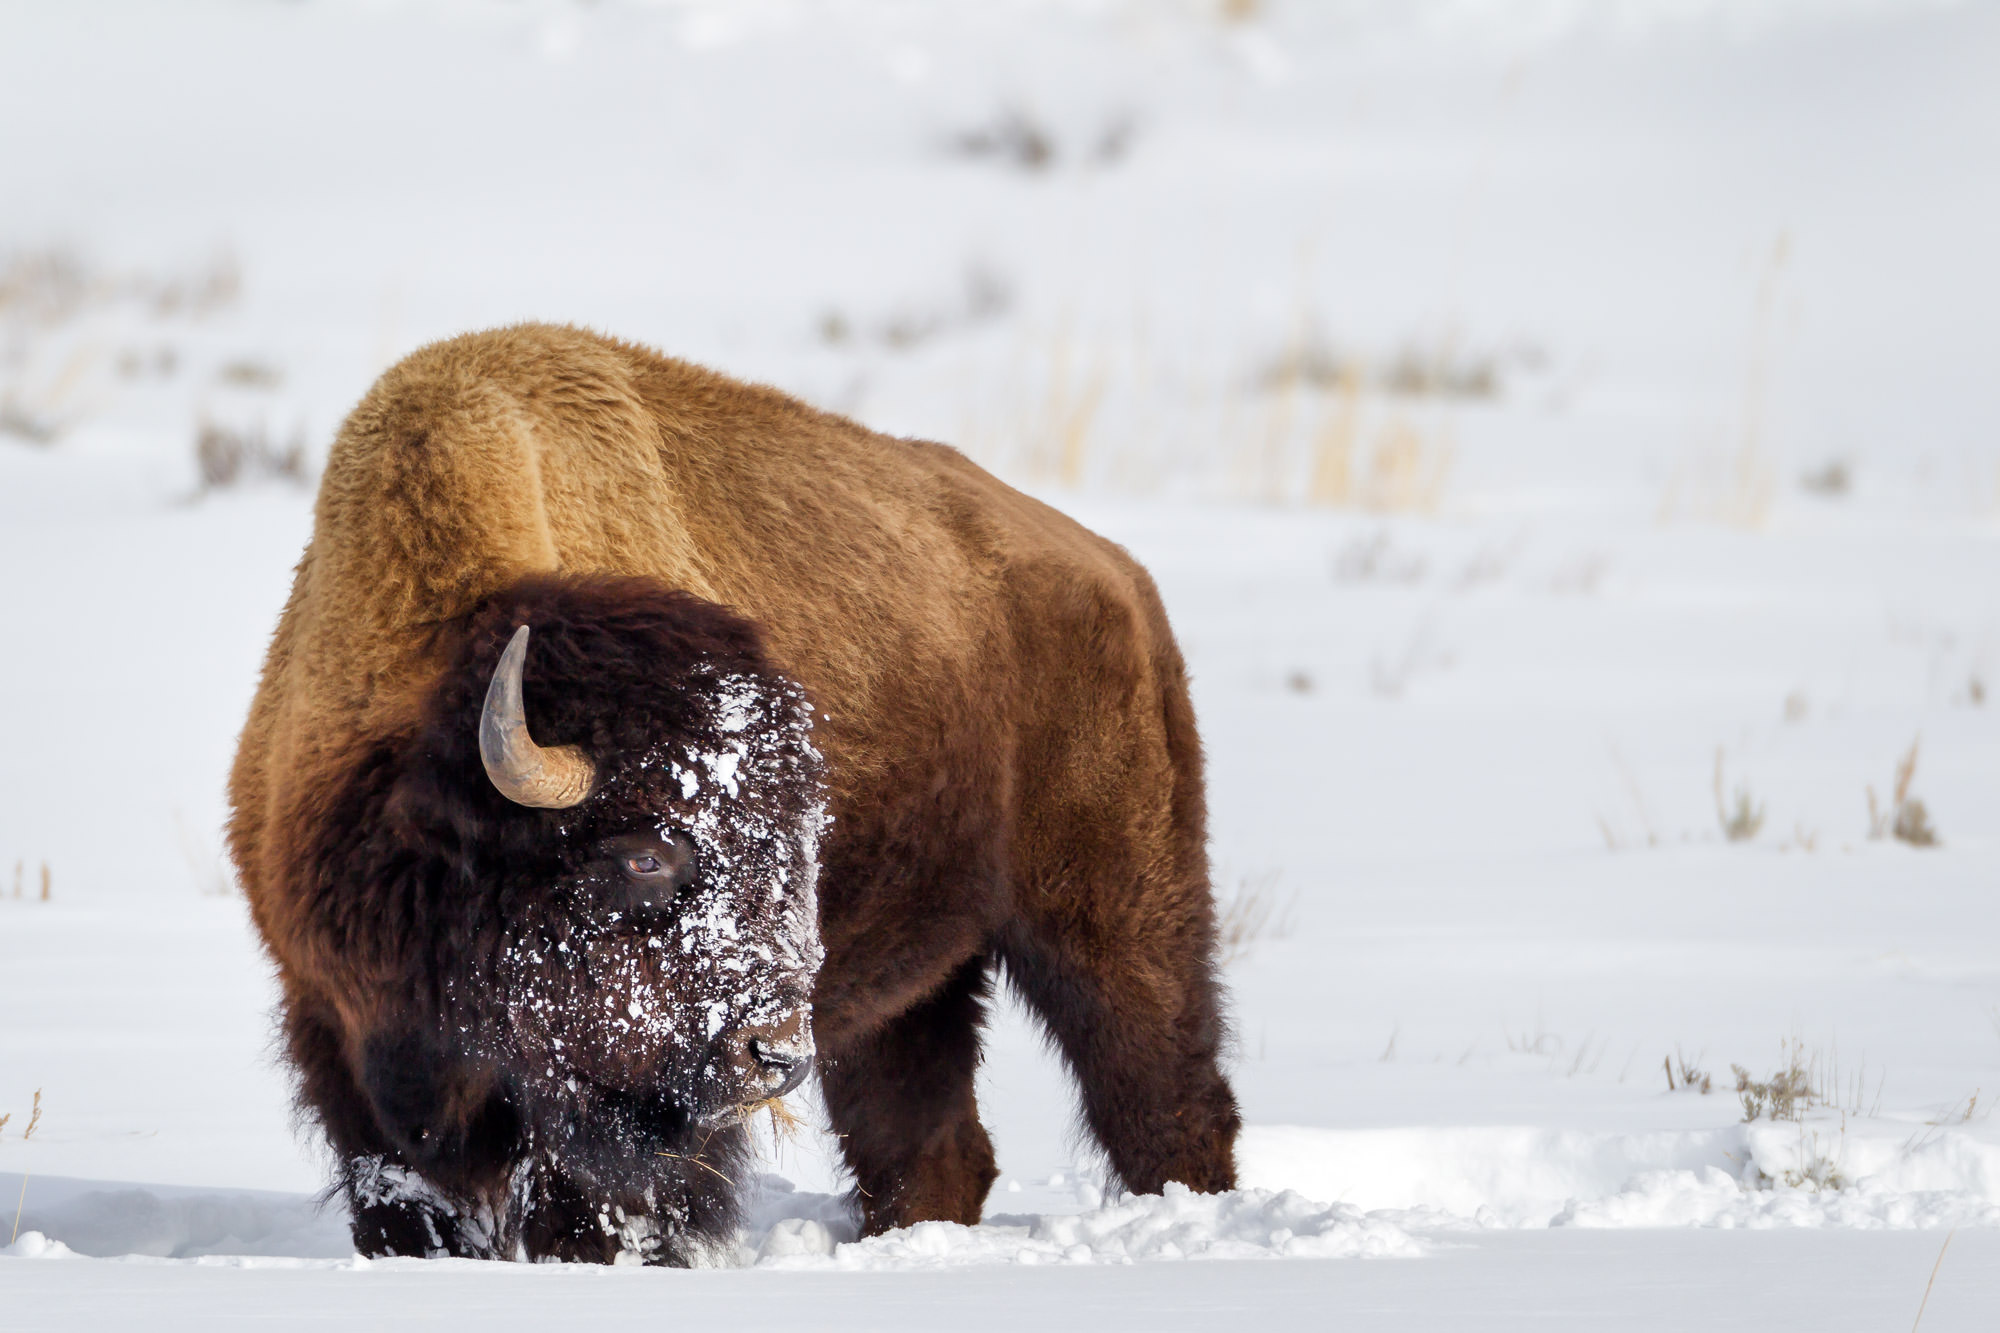 Wyoming, Bison, Winter, Yellowstone, snow, limited edition, photograph, fine art, wildlife, photo